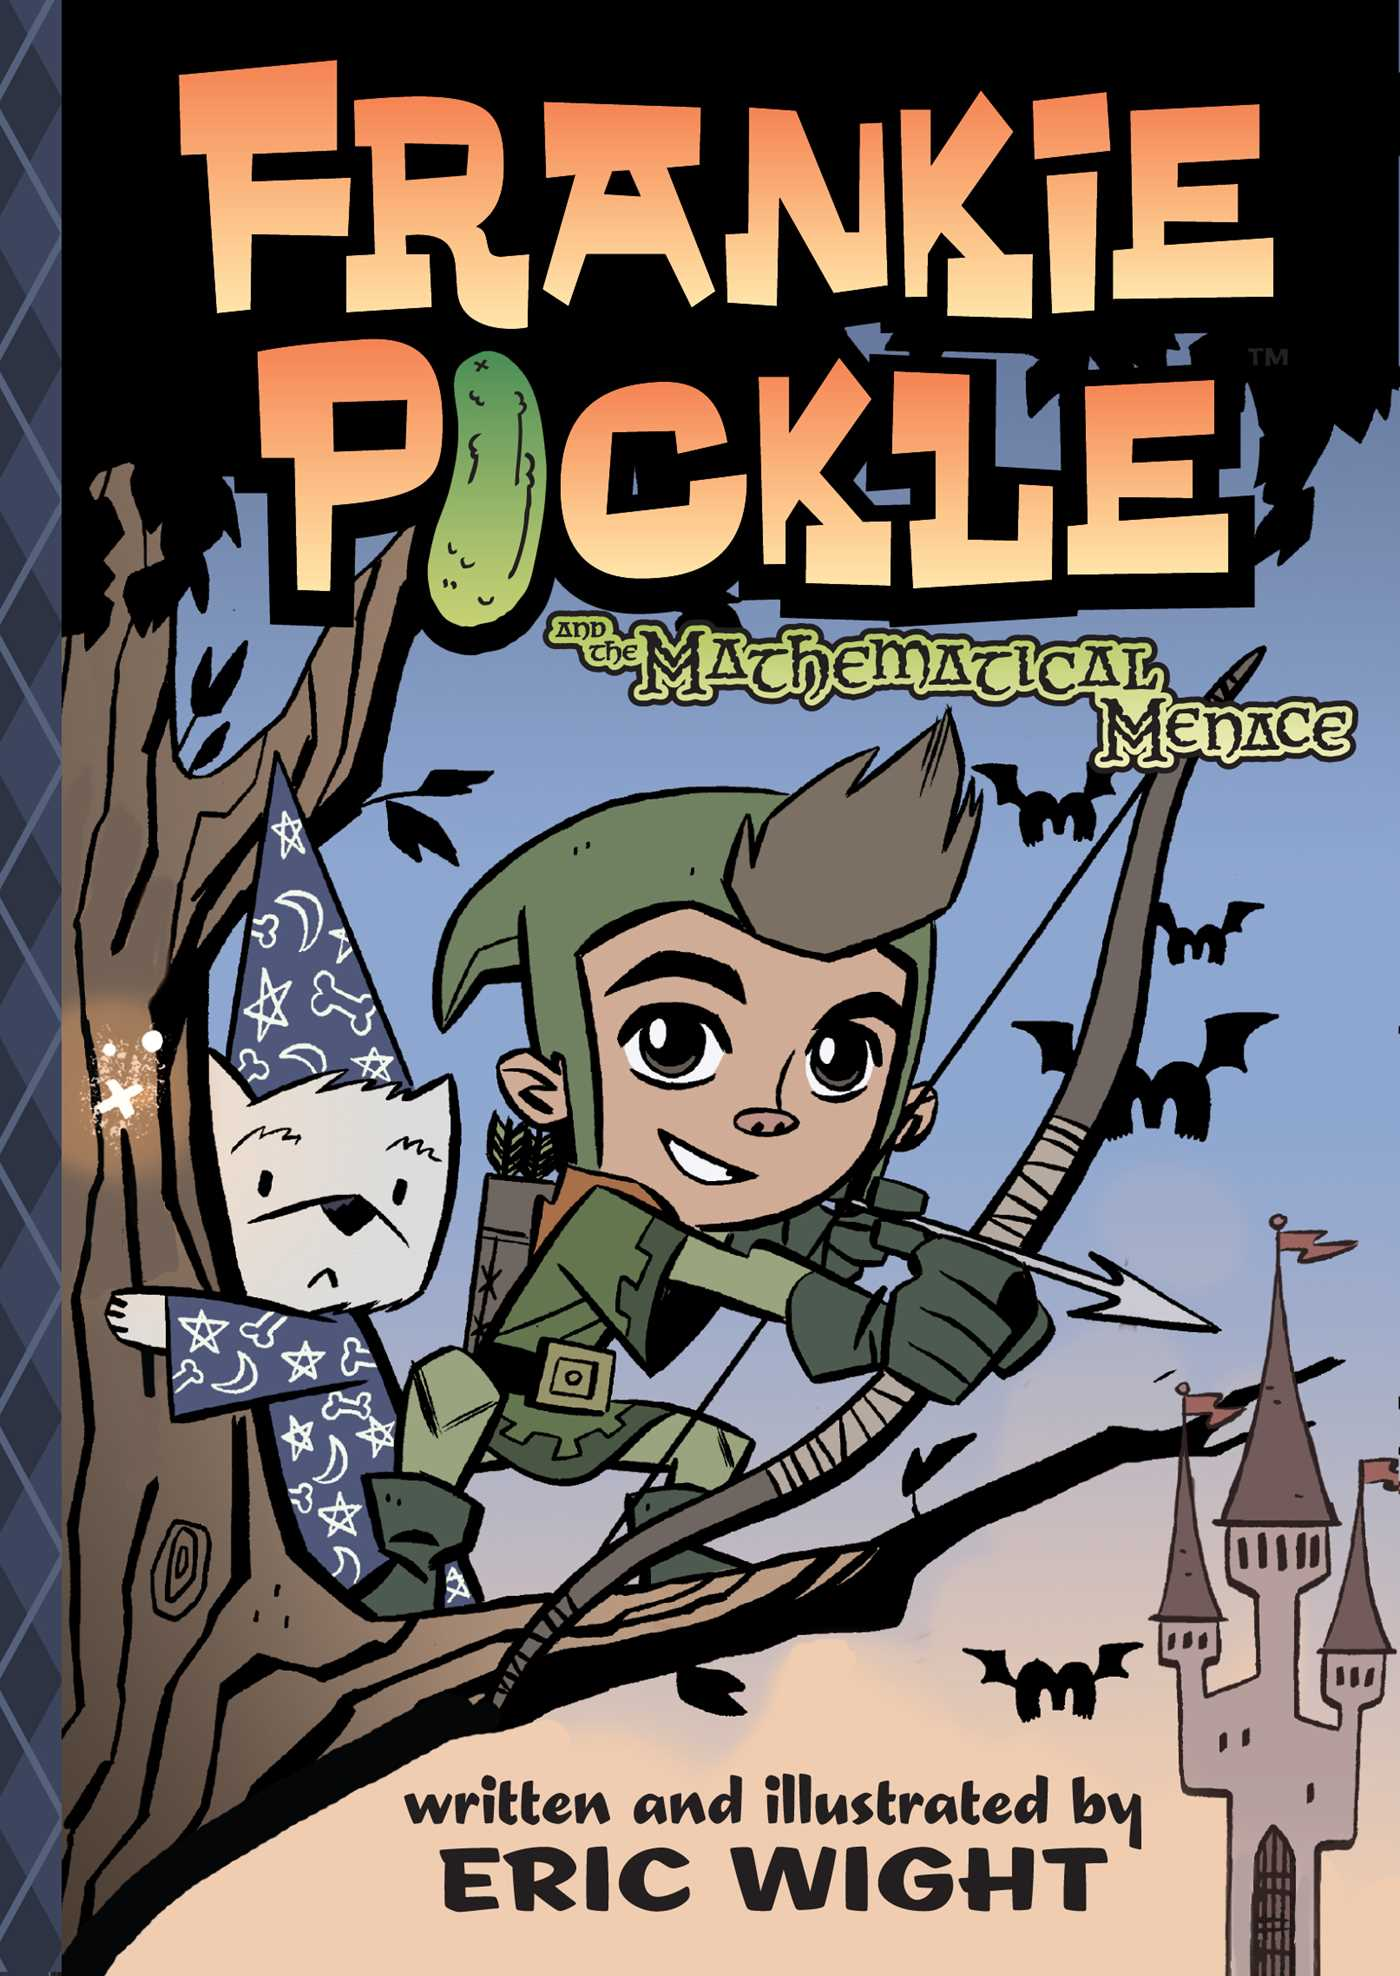 Frankie pickle and the mathematical menace 9781439155844 hr